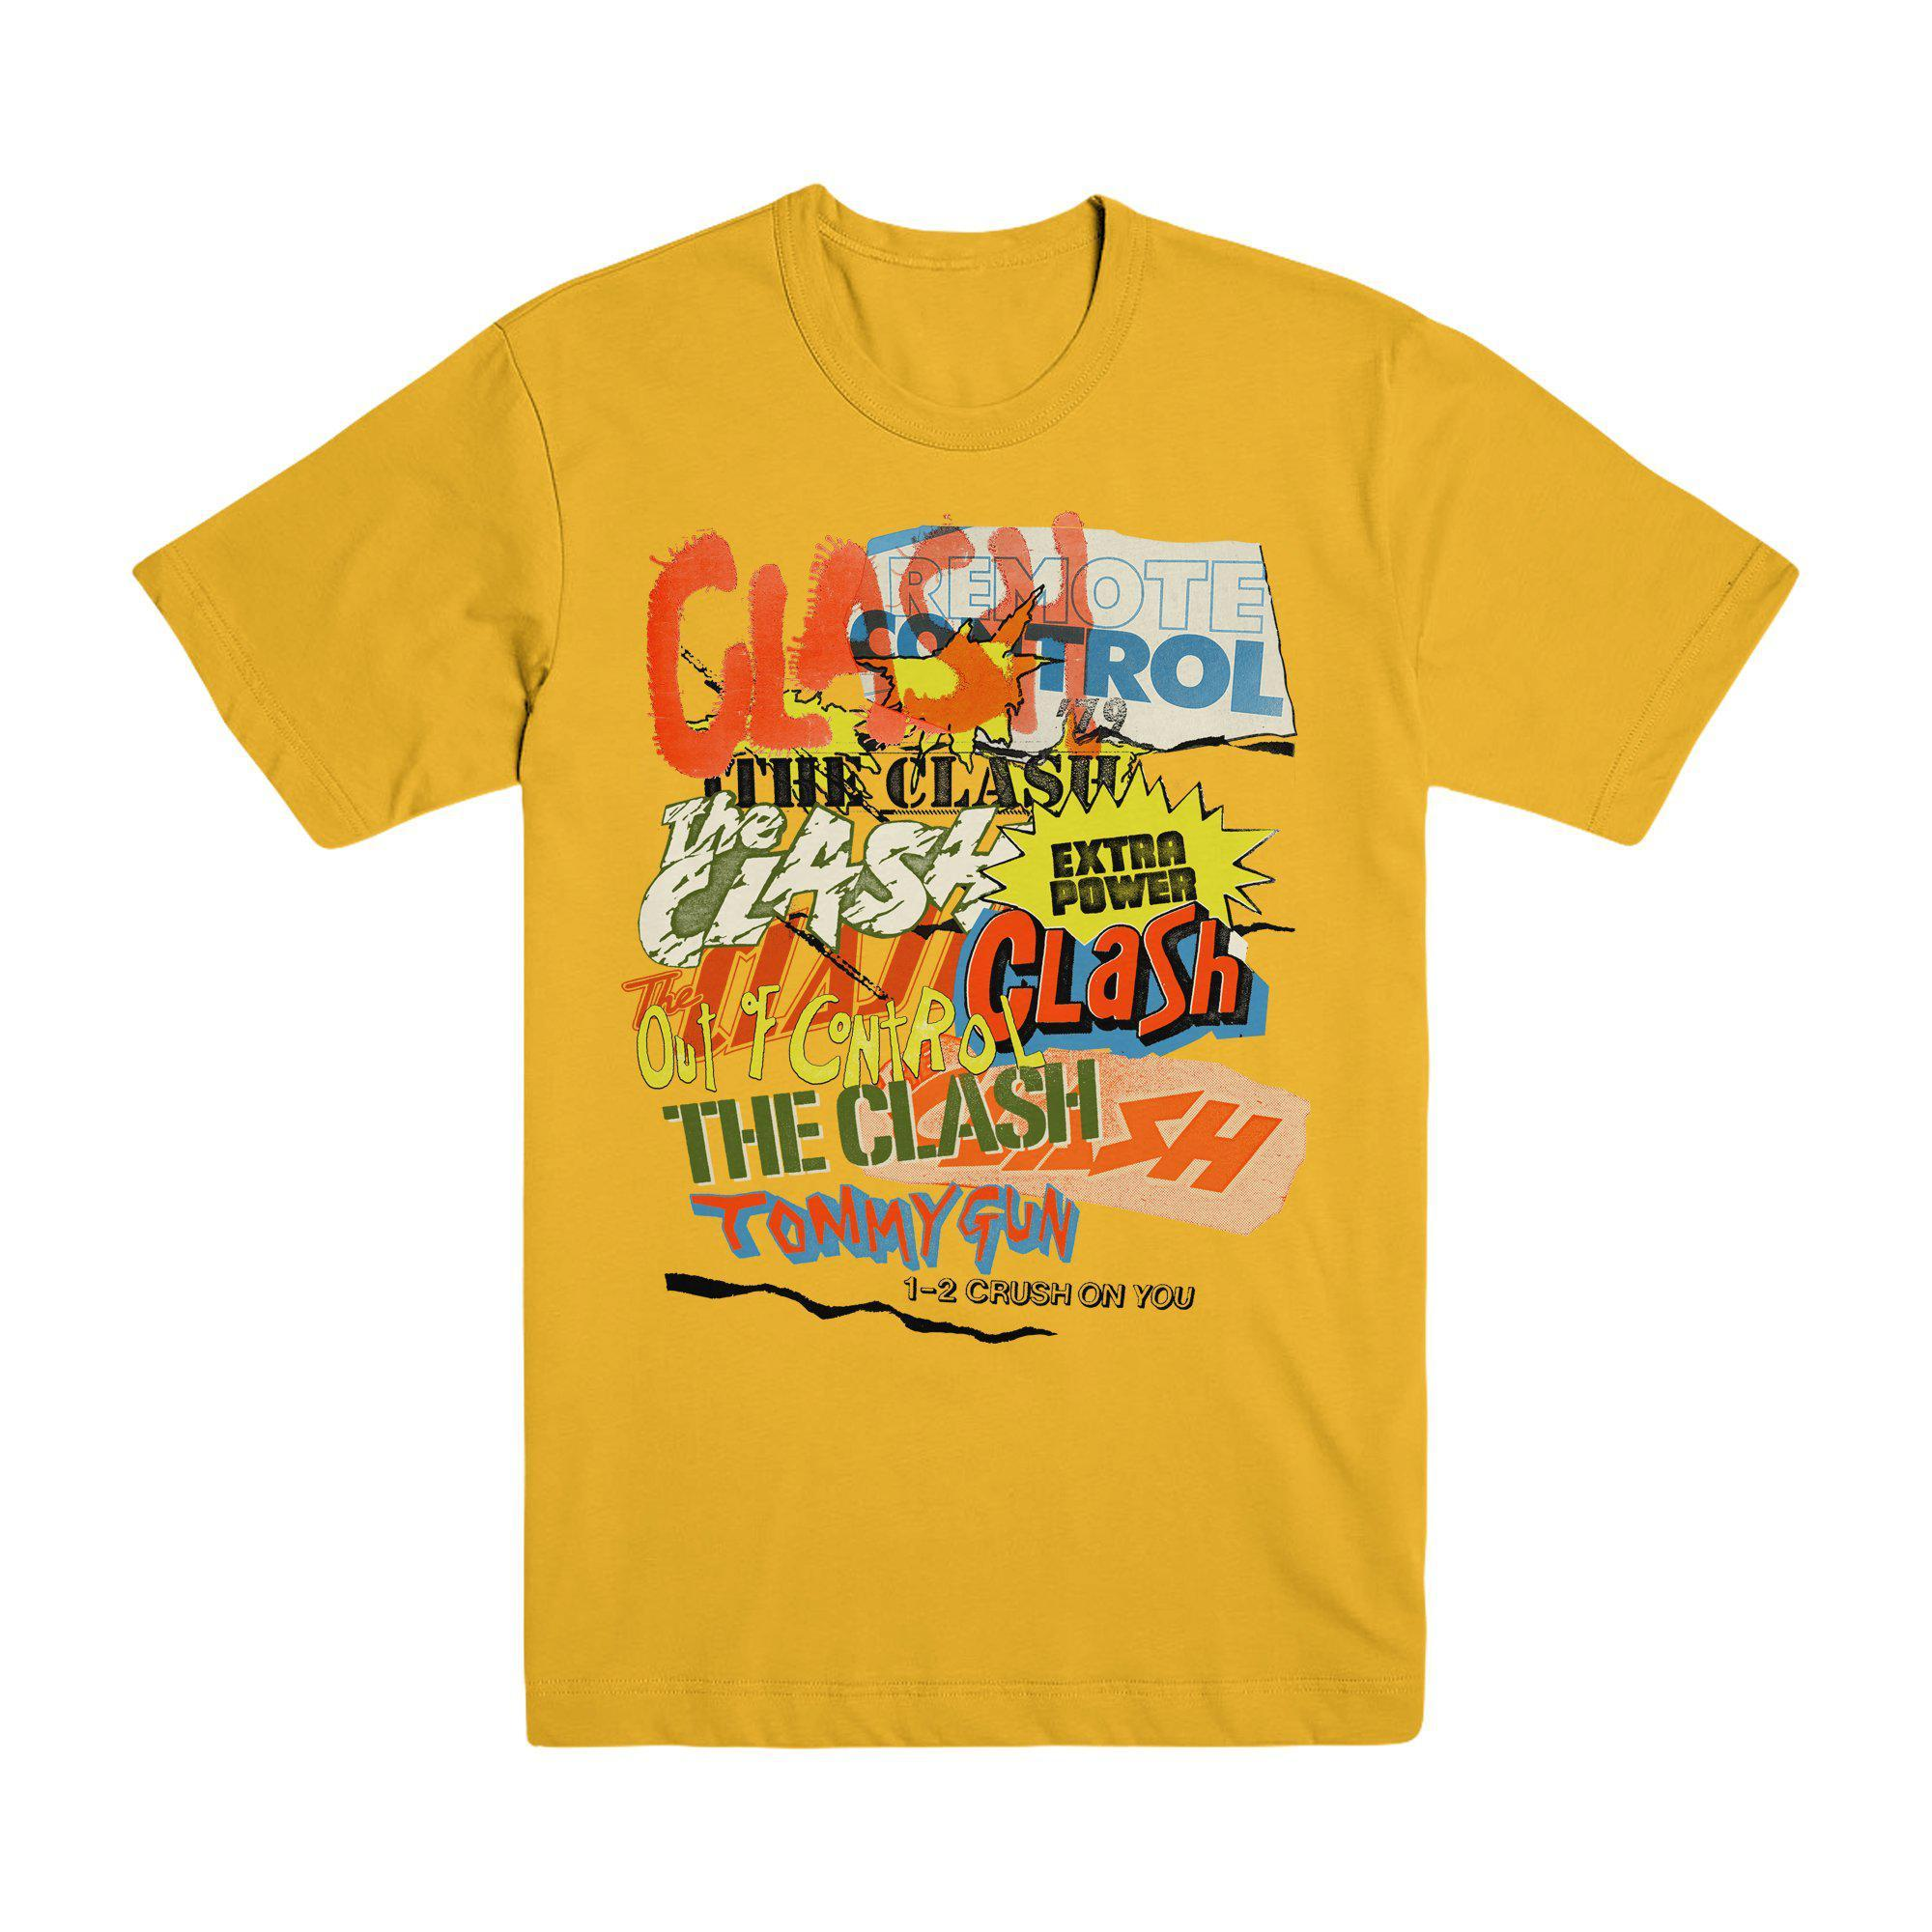 Black Market Clash - Singles Collage Gold T-shirt